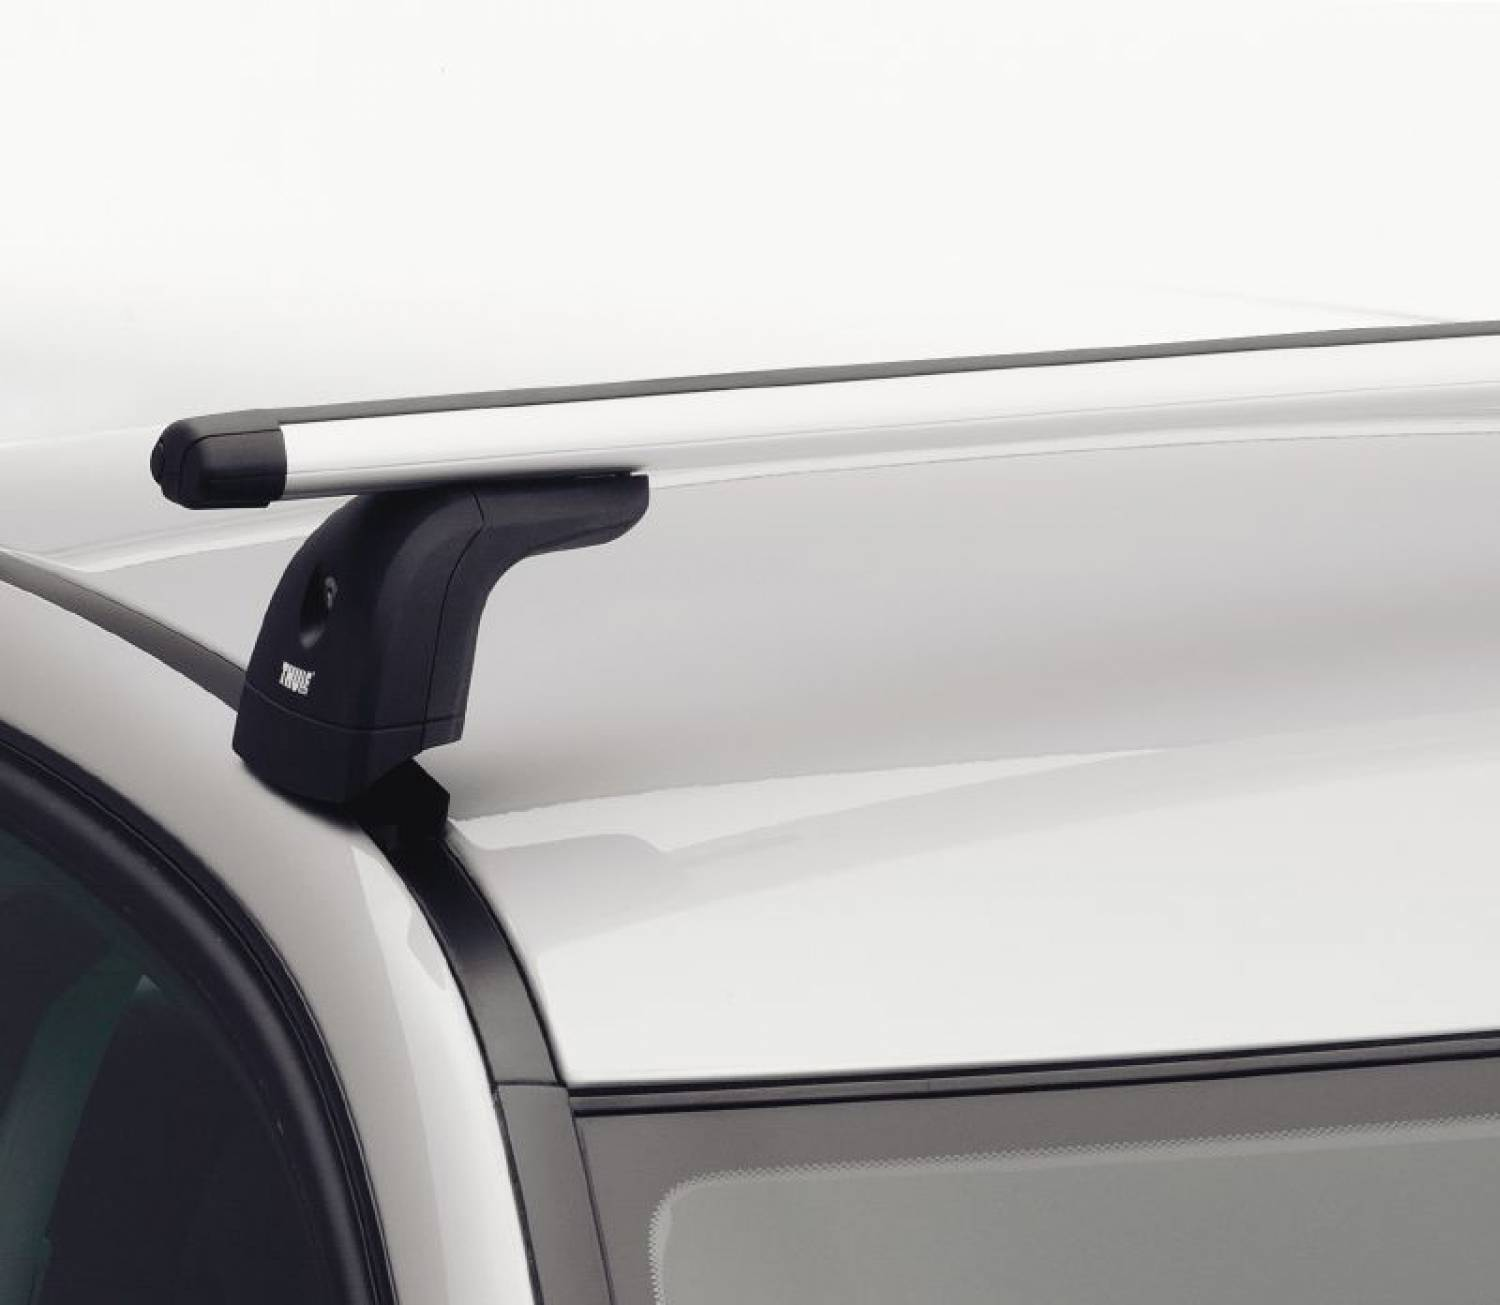 thule roof rack foot for cars with integrated roof rail or fixpoint rh sportiek nl IAM 751 Scab List I-751 Cover Letter